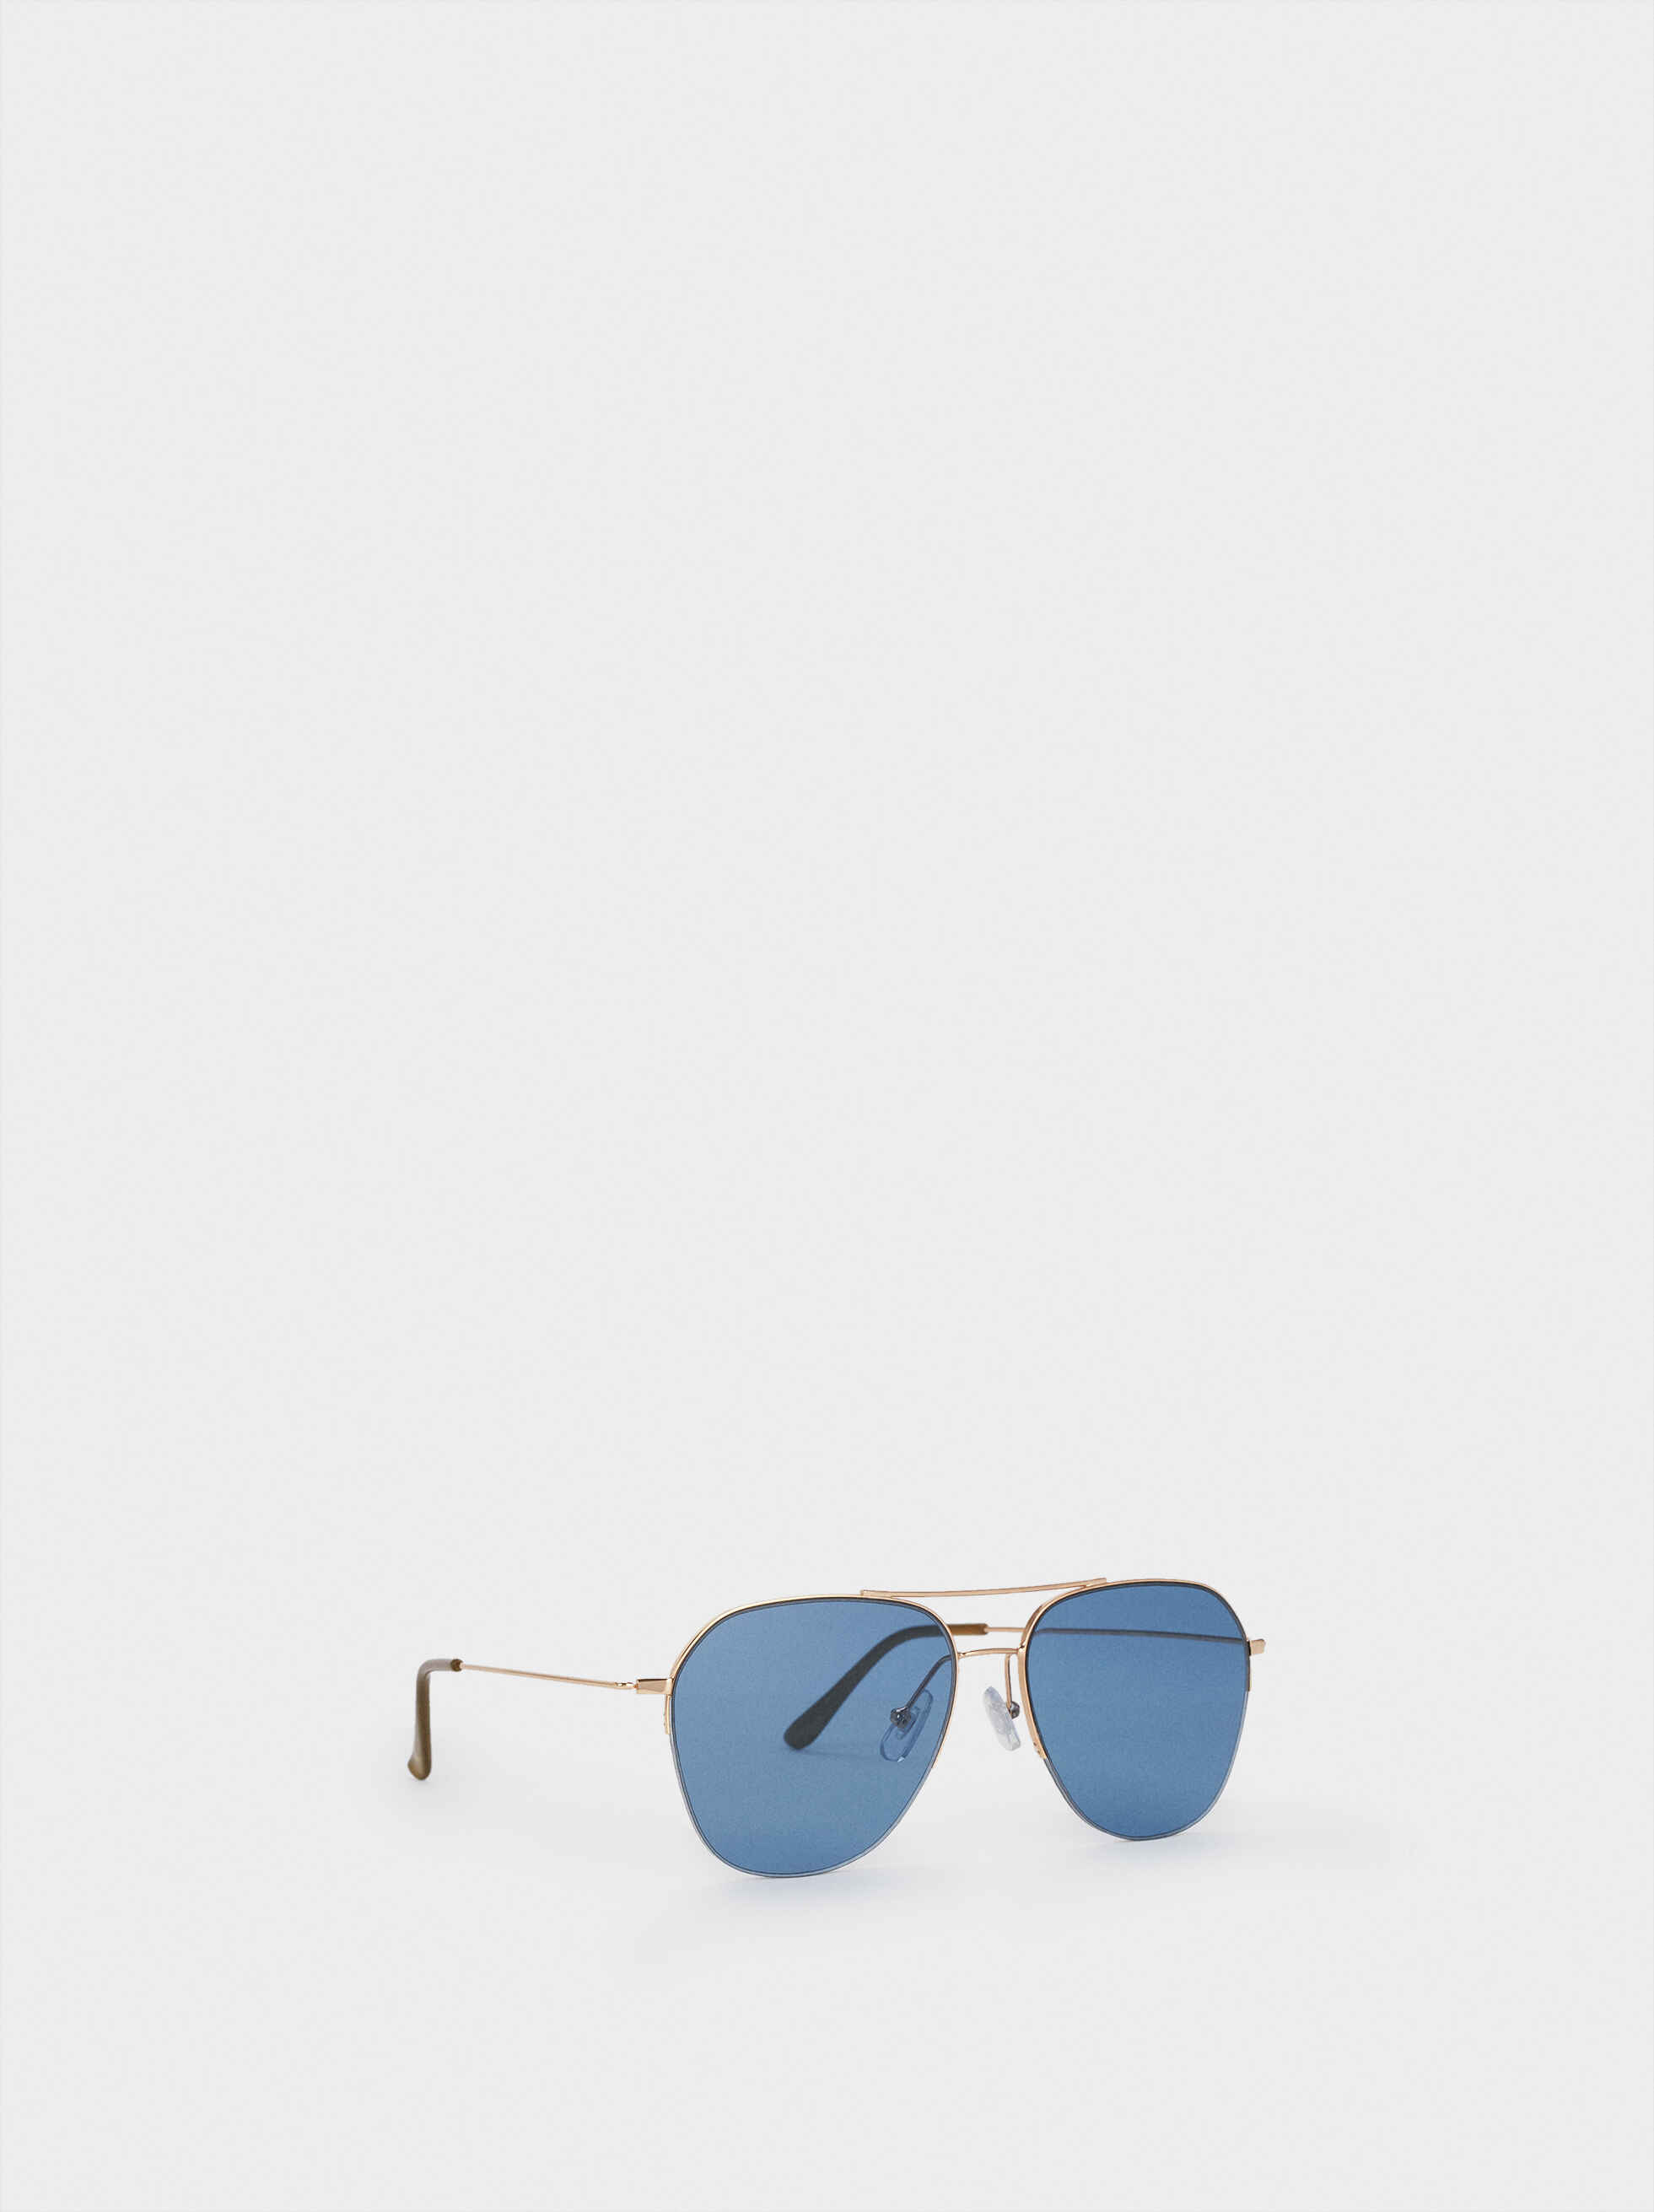 Aviator Sunglasses, Orange, hi-res